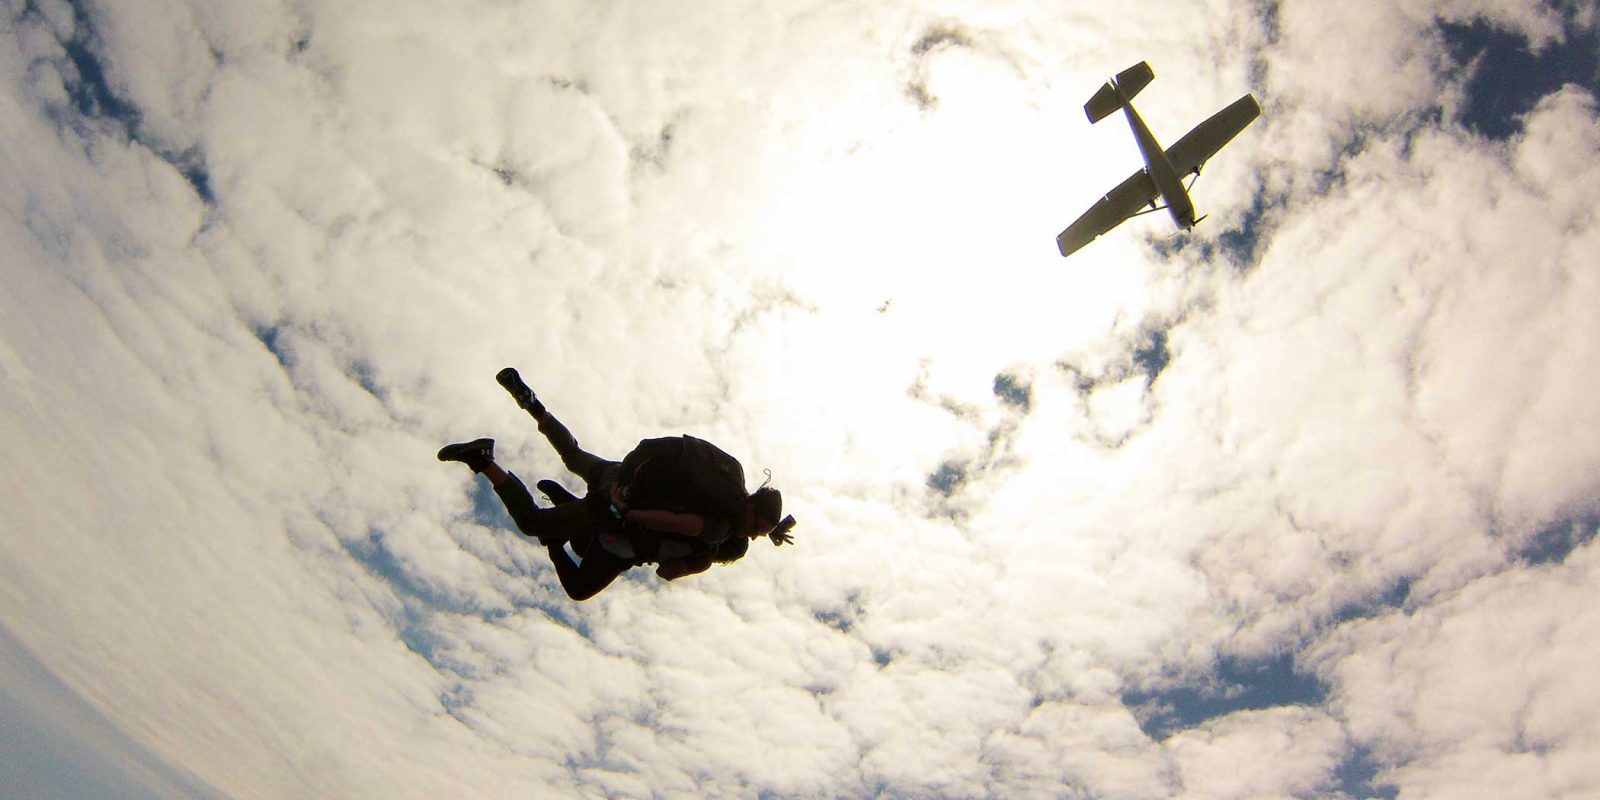 Tandem skydivers under the clouds are within the skydiving weight limit